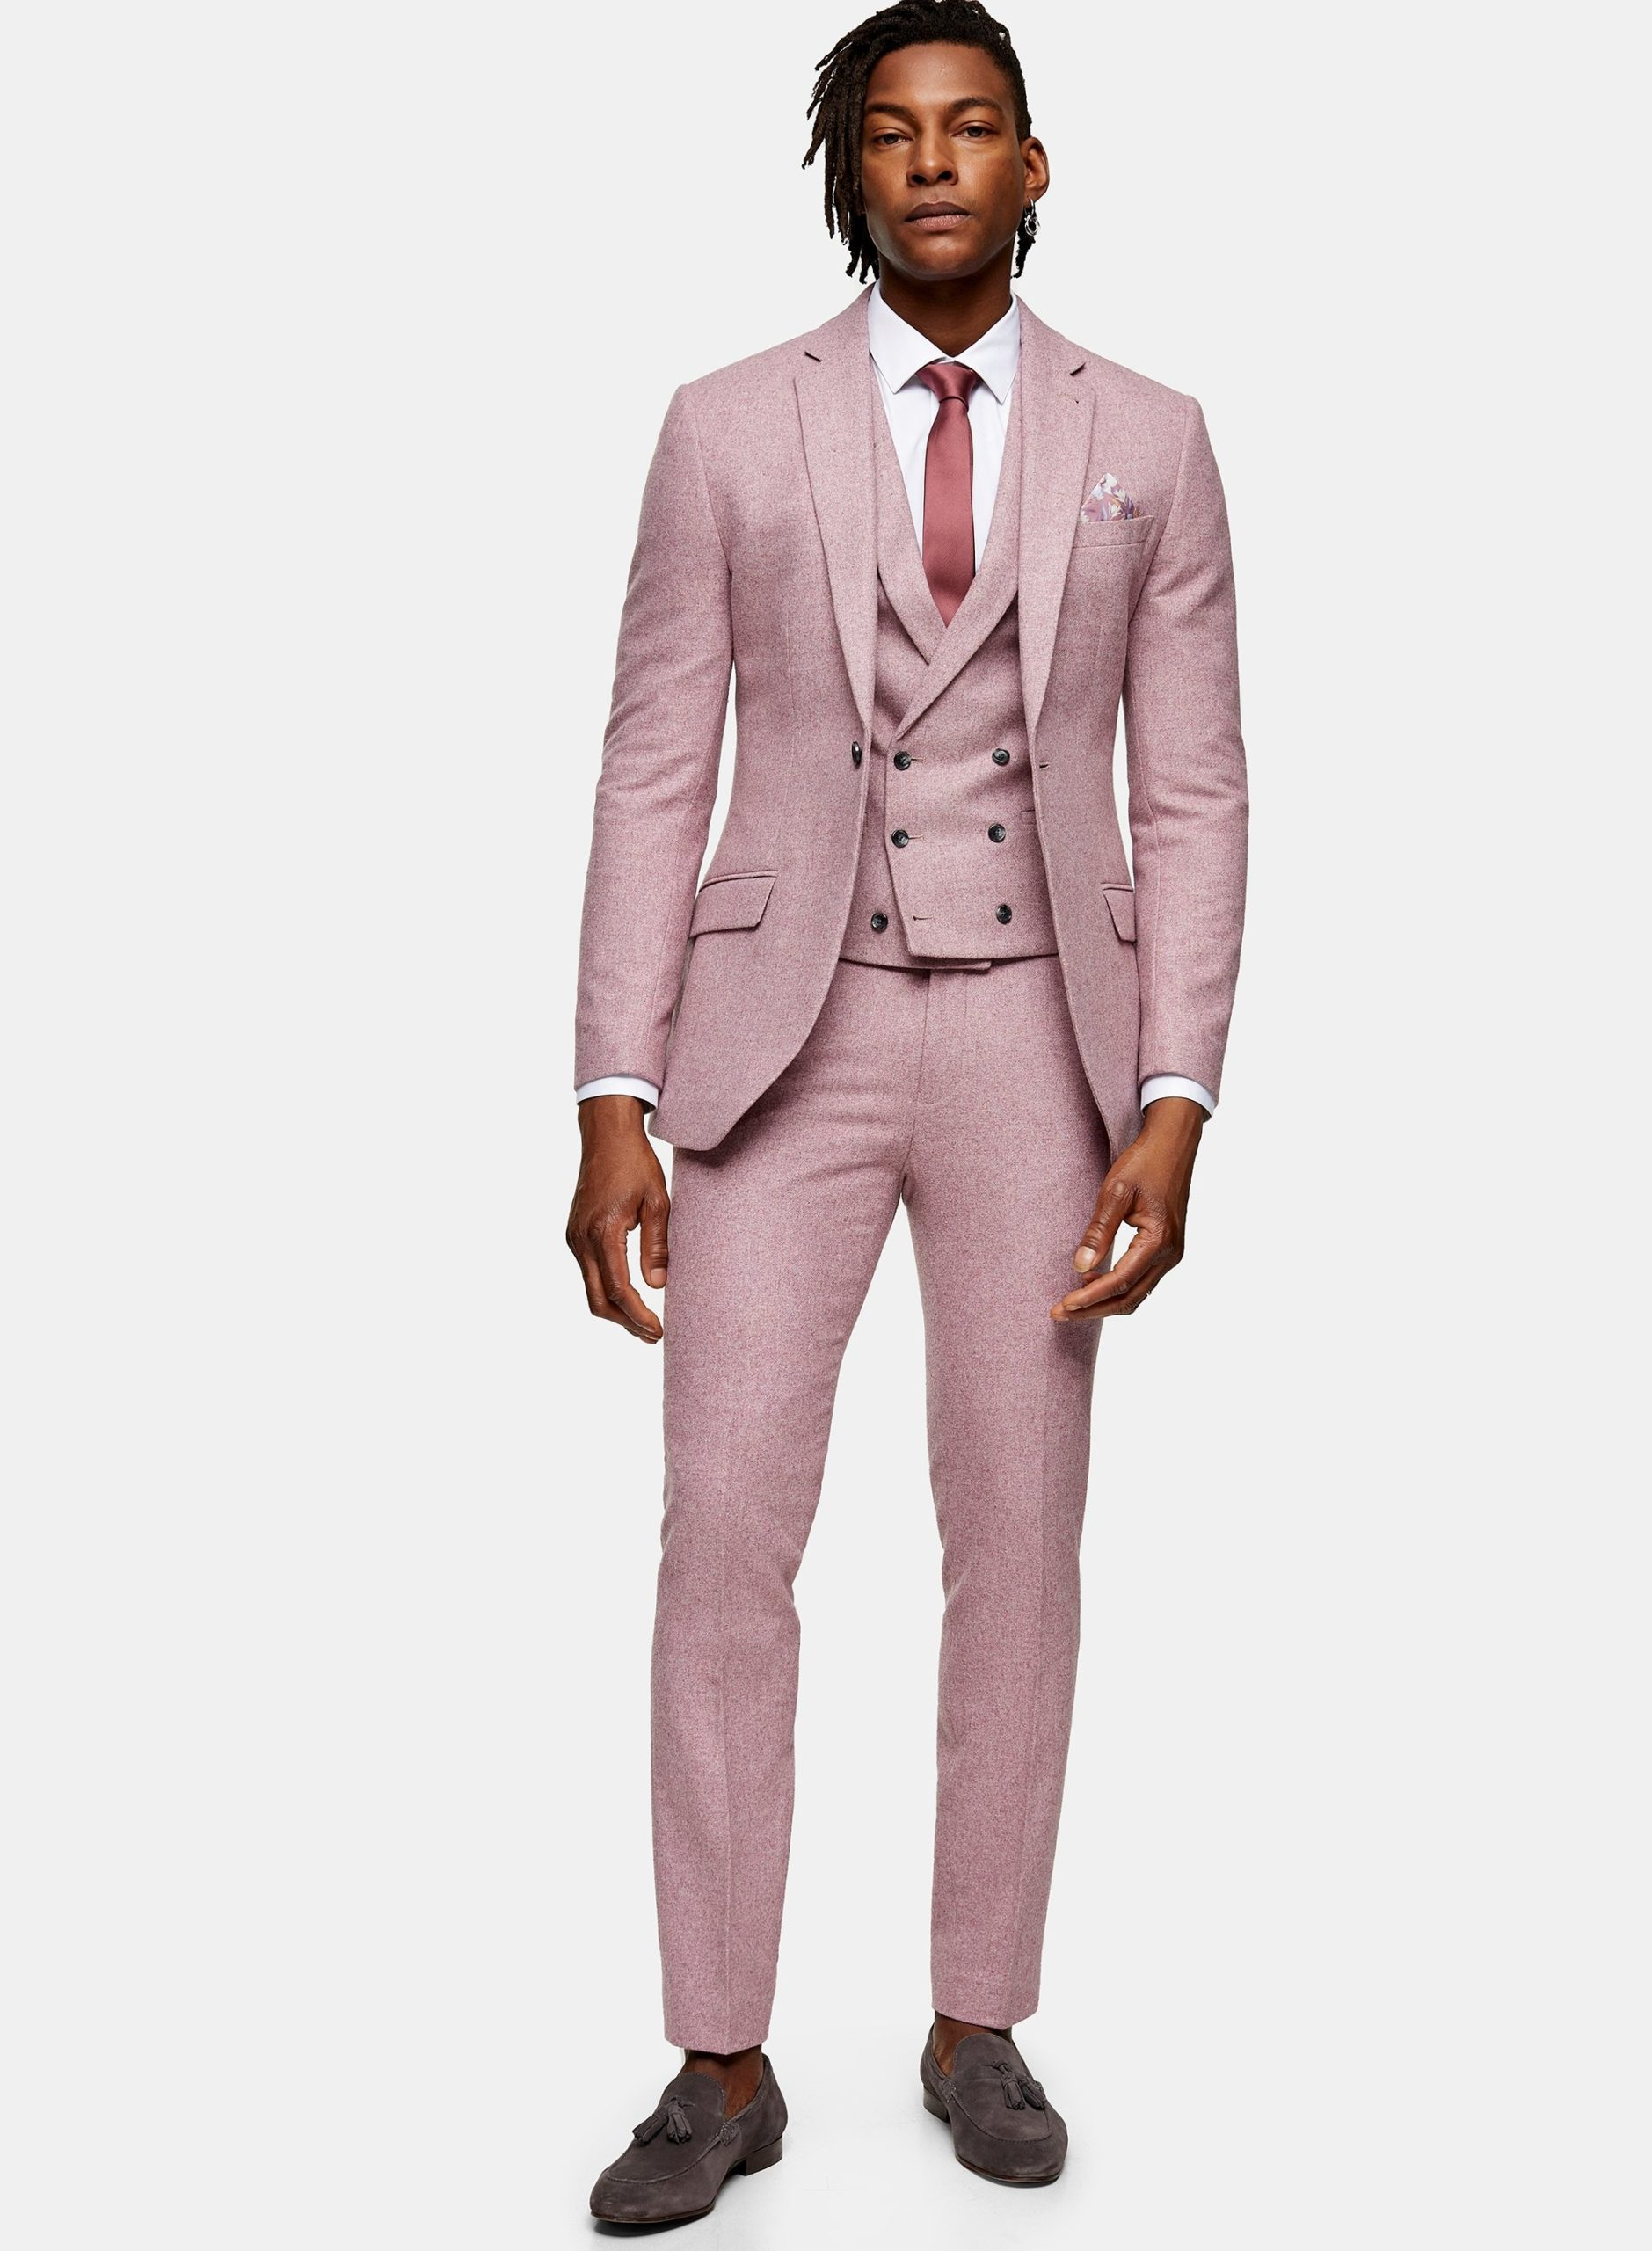 man wearing a pink 3 piece suit